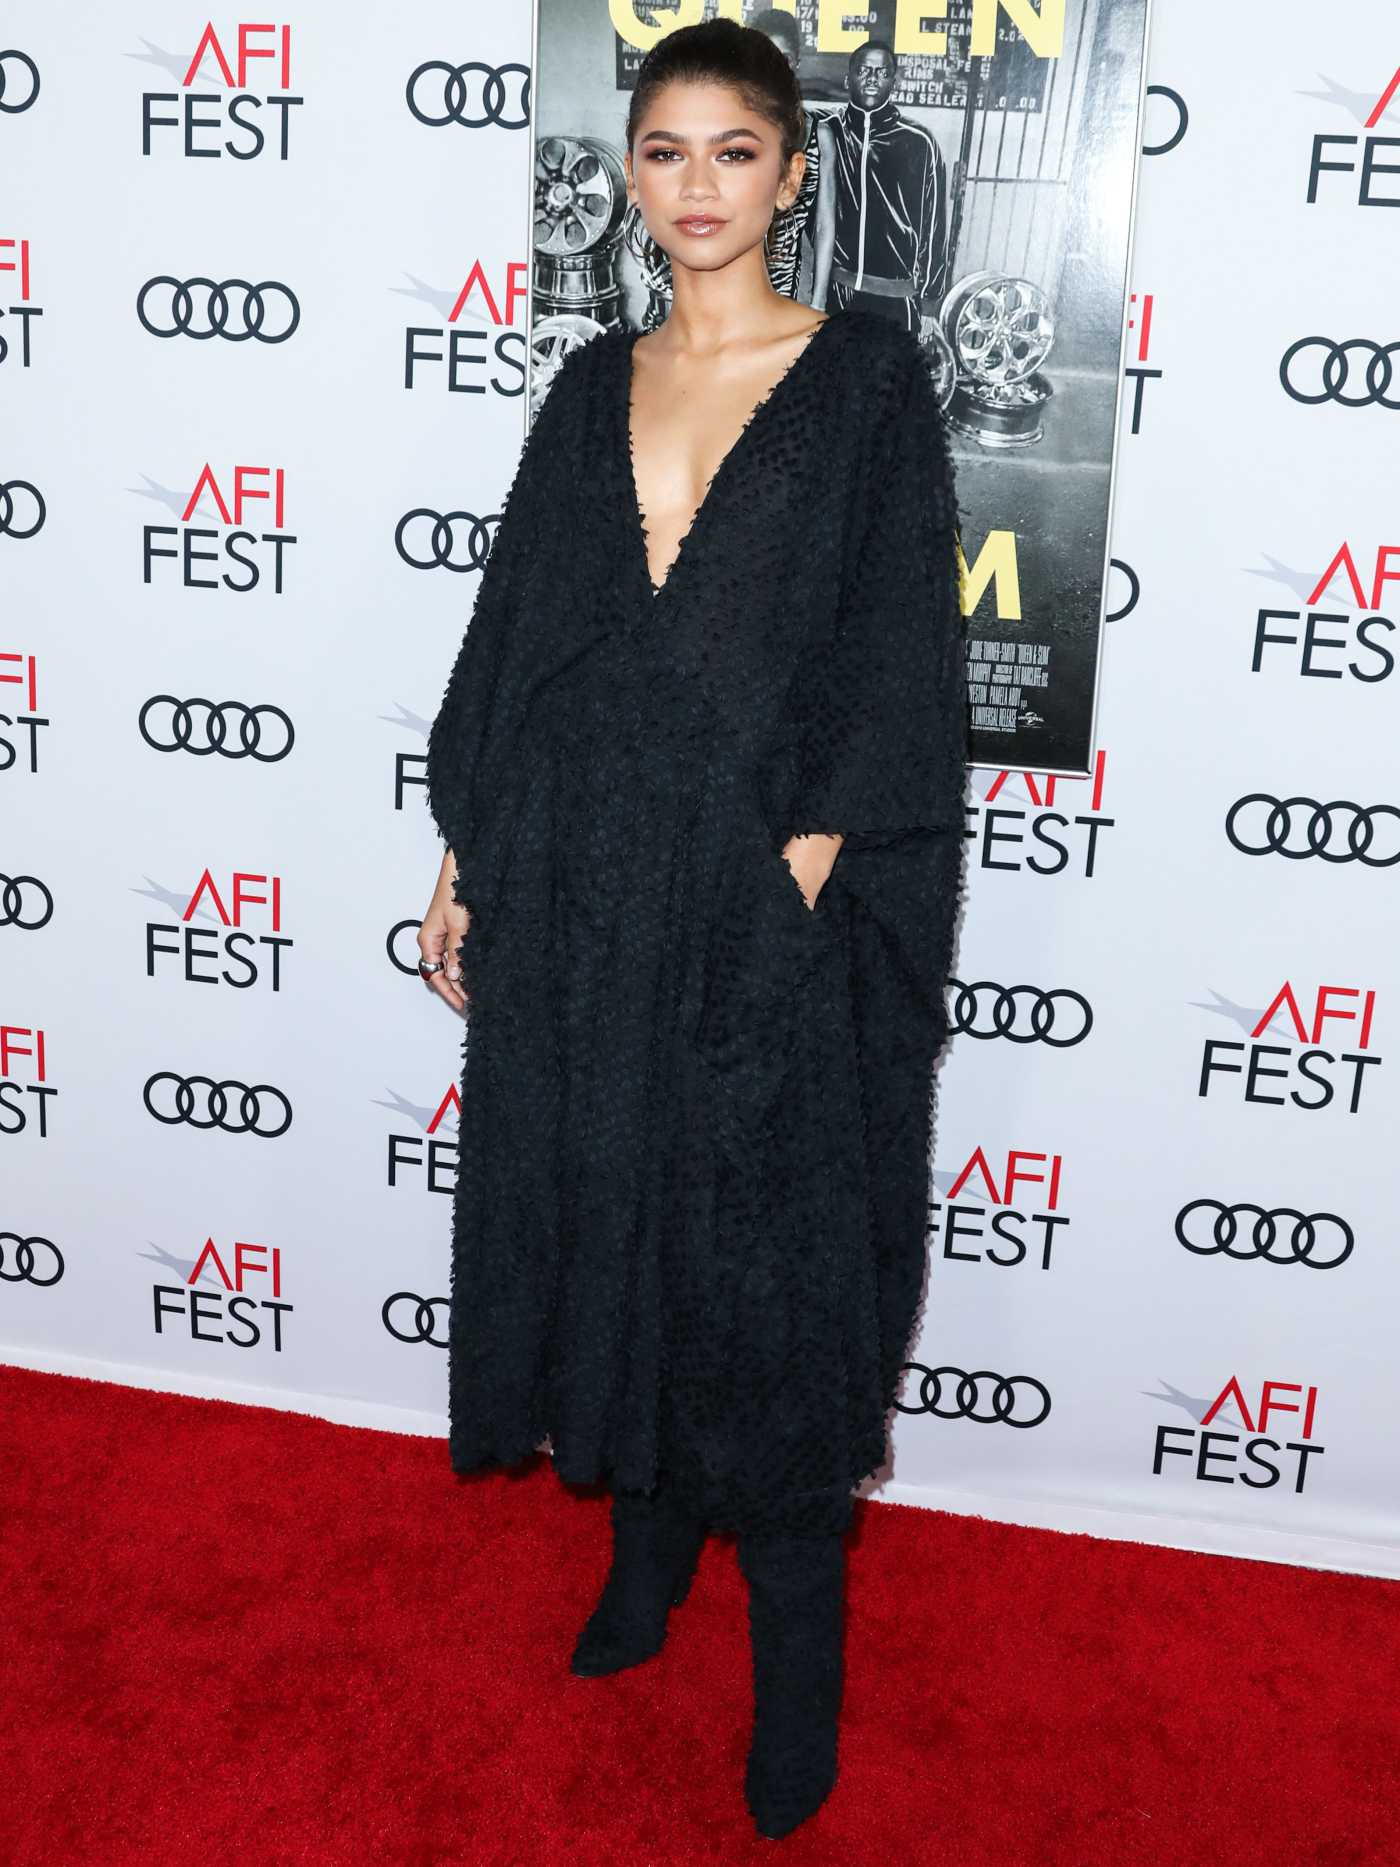 Zendaya Attends the Queen and Slim Premiere at AFI Fest in Hollywood 11/14/2019